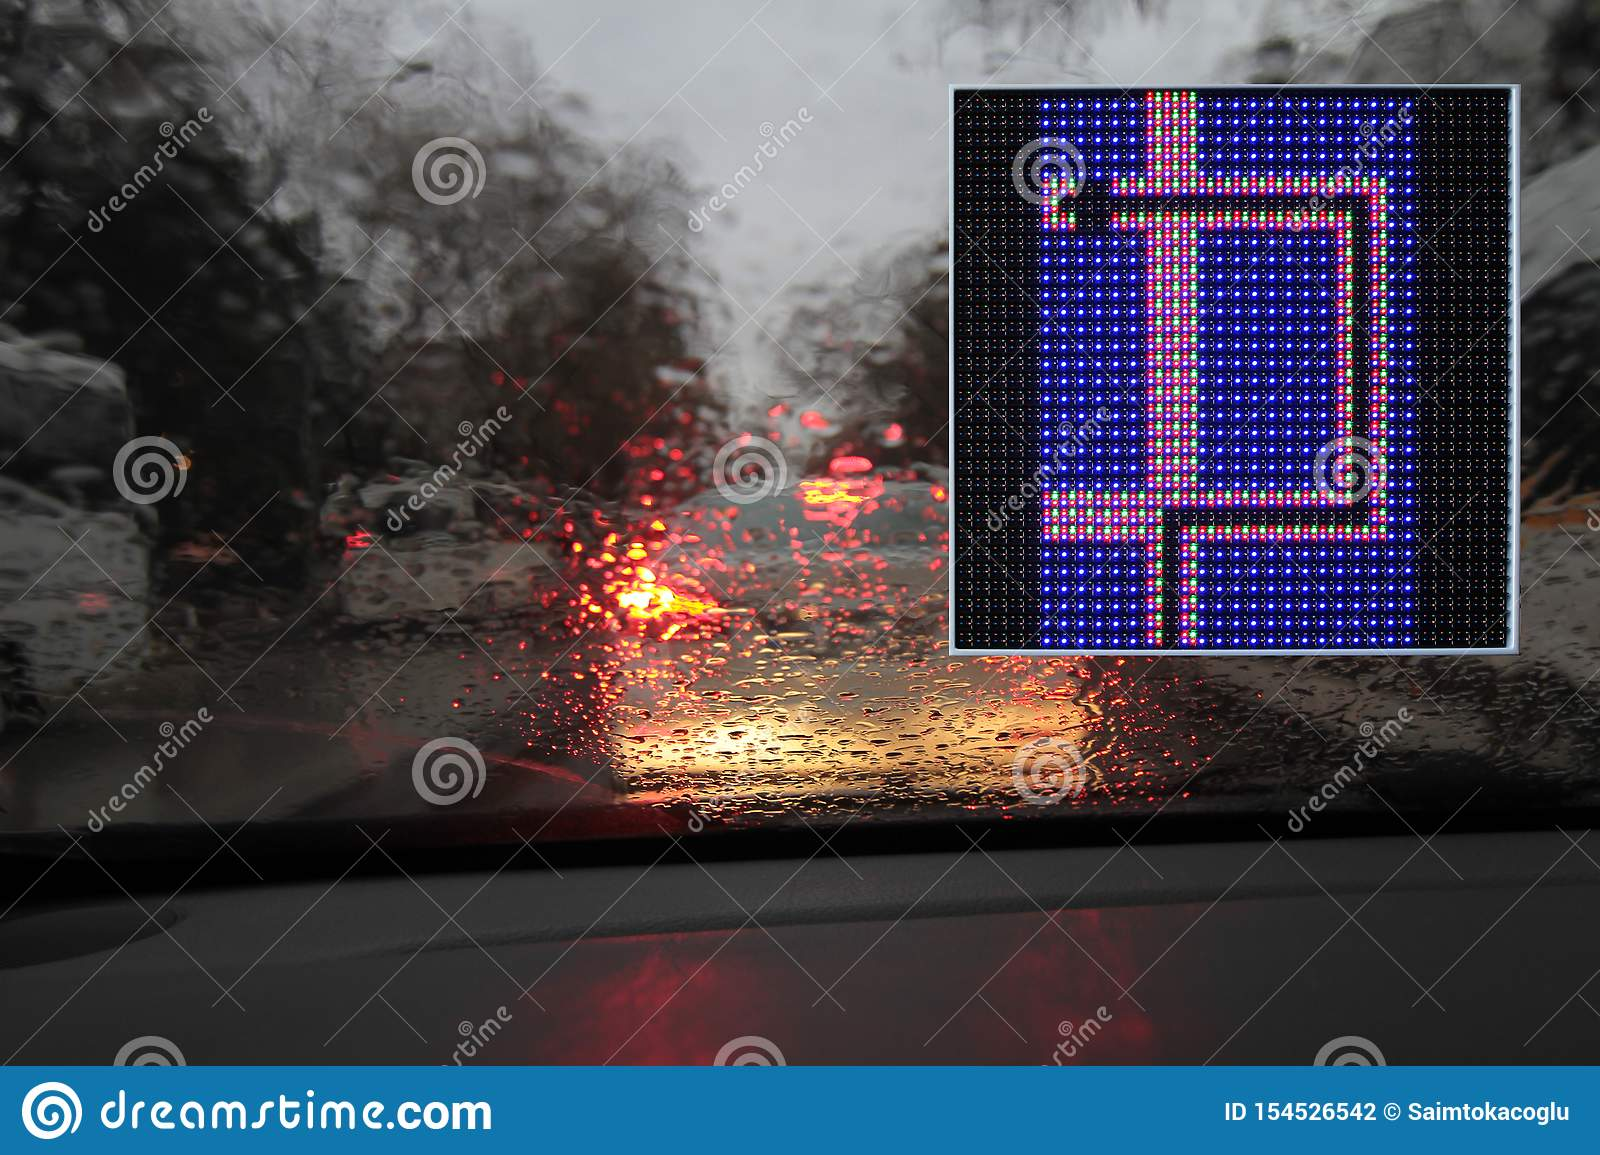 Colorful traffic warning and guidance signs made with LED lights